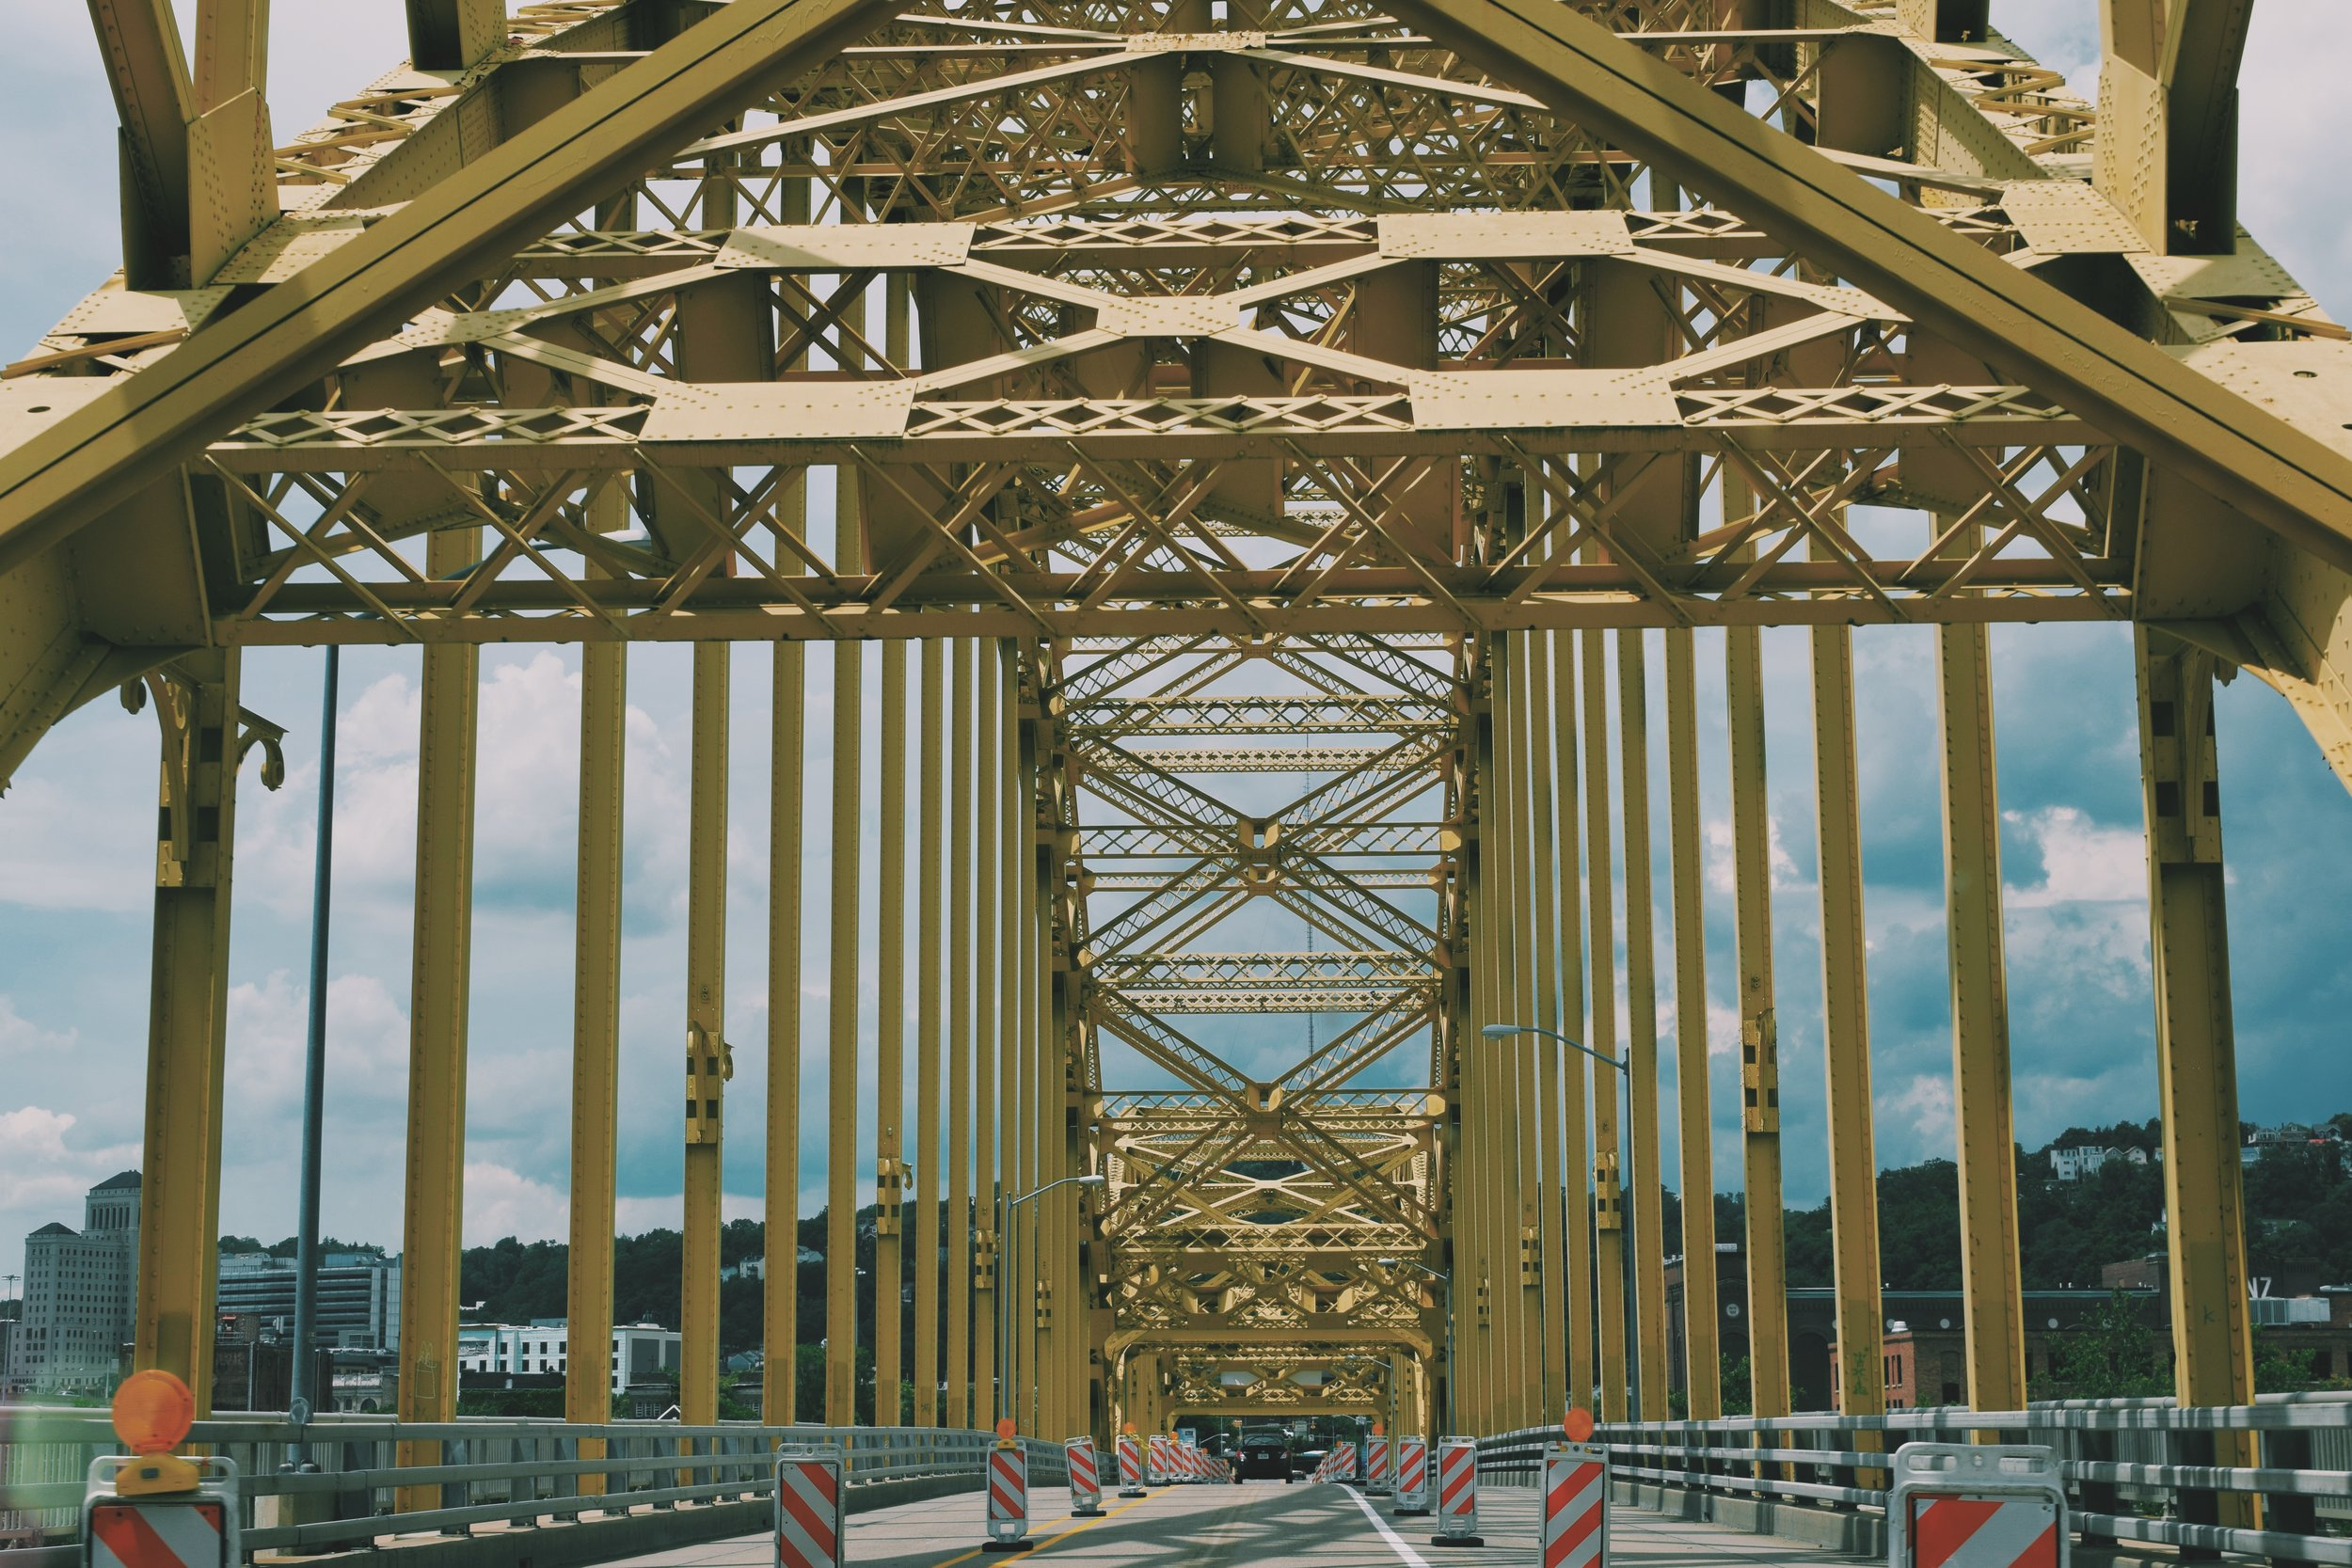 - On this particular Friday, we decided to pack our bags and head out east to Pennsylvania. The plan? See as much of Pittsburgh as our feet and eyes could handle over 2.5 days.